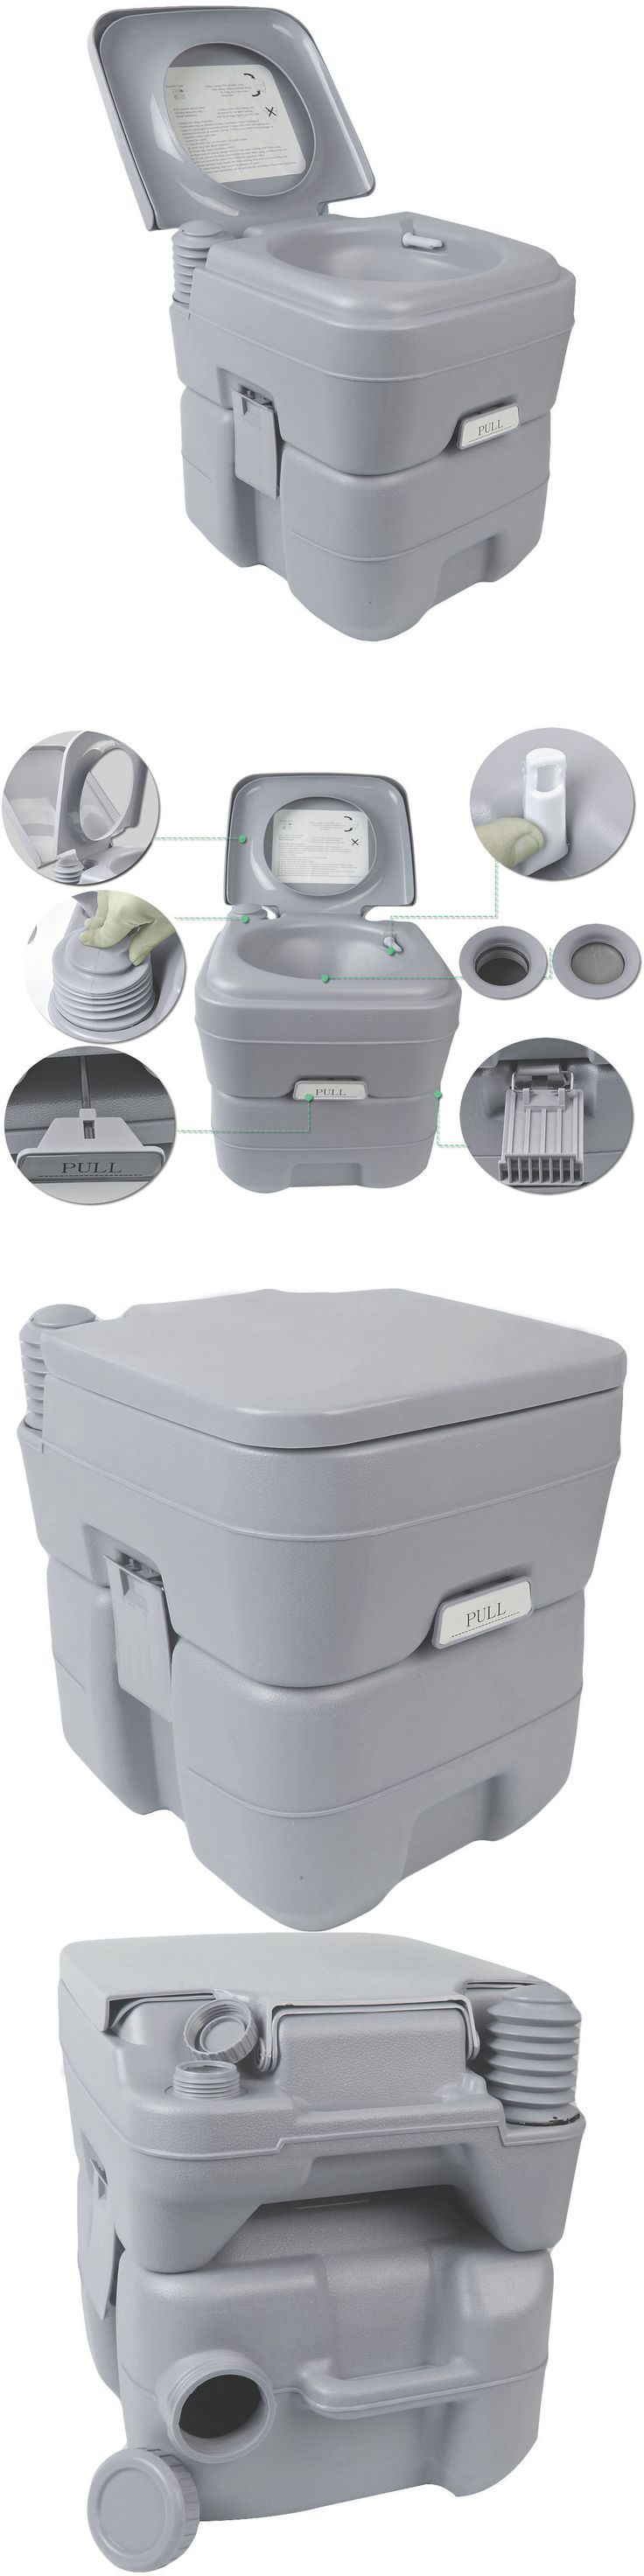 Portable commode folding bedside handicap adult toilet potty chair - Portable Toilets And Accessories 181397 Portable Toilet Camping Commode Porta Potty Restroom Outdoor A Potti